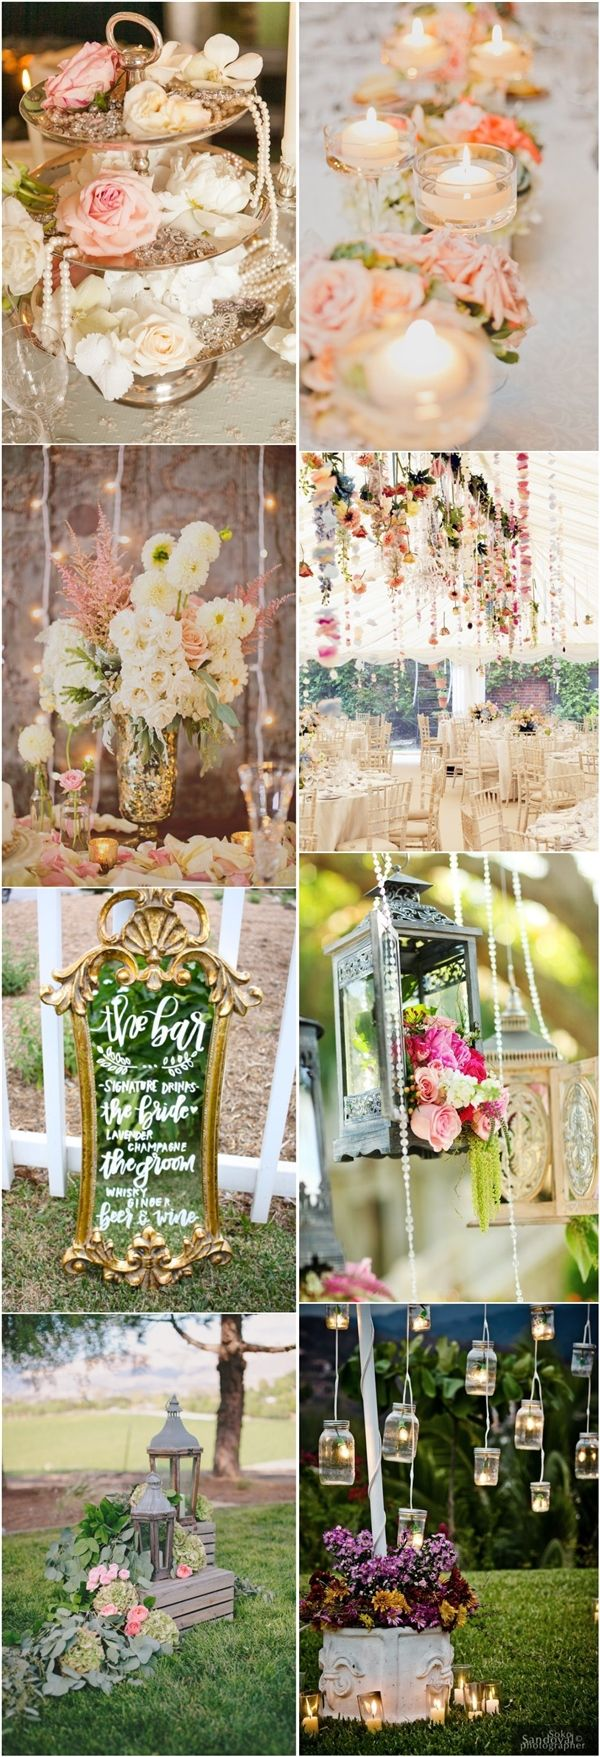 Gallery: rustic chic vinatge wedding decor ideas - Deer Pearl Flowers